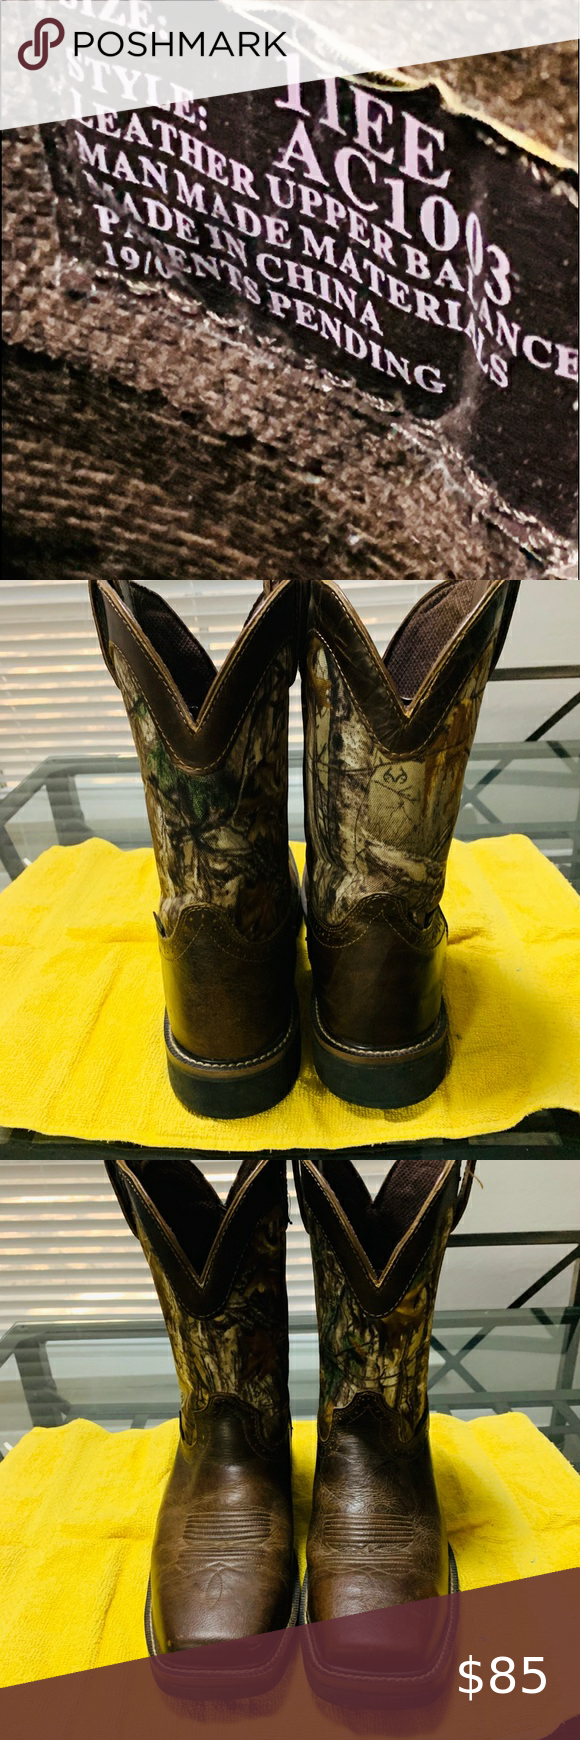 Work Boots Justin 11ee Steel Toe And Water Proof Work Boots In Excellent Condition Justin Boots Shoes Heeled Boots In 2020 Boots Work Boots Justin Boots